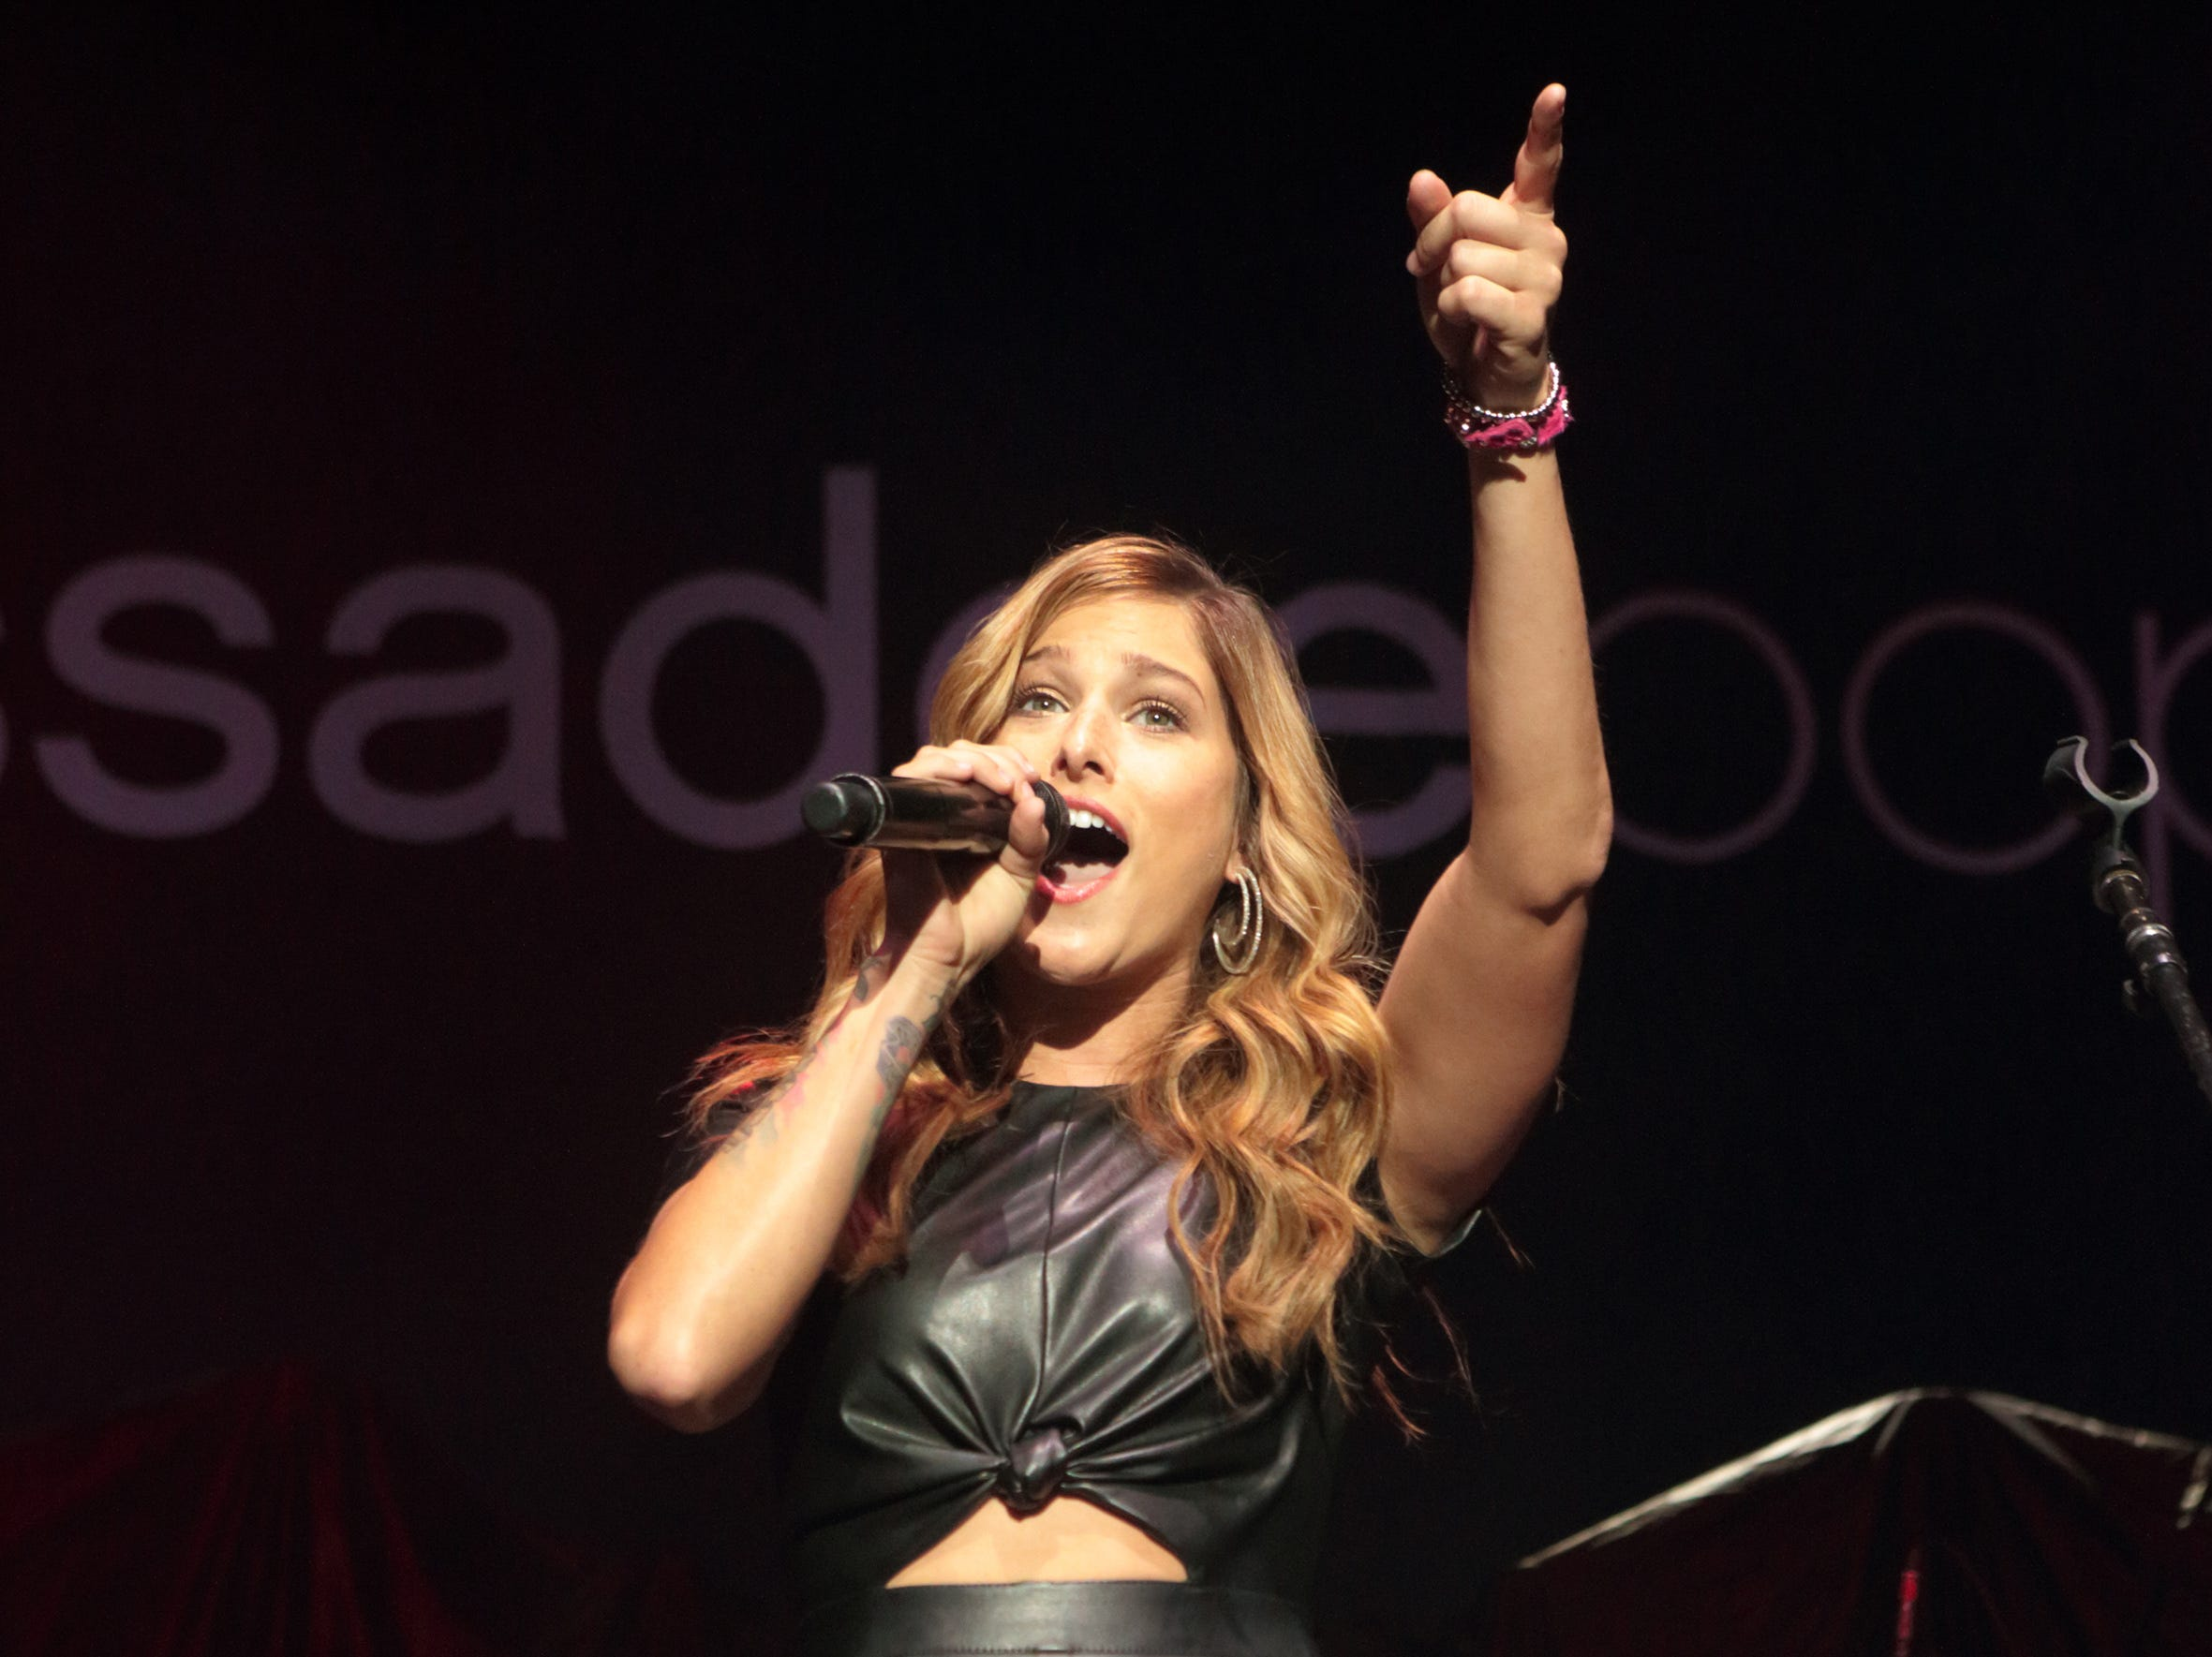 Cassadee Pope is scheduled to play the Chevy Riverfront Stage at CMA Fest 2019.